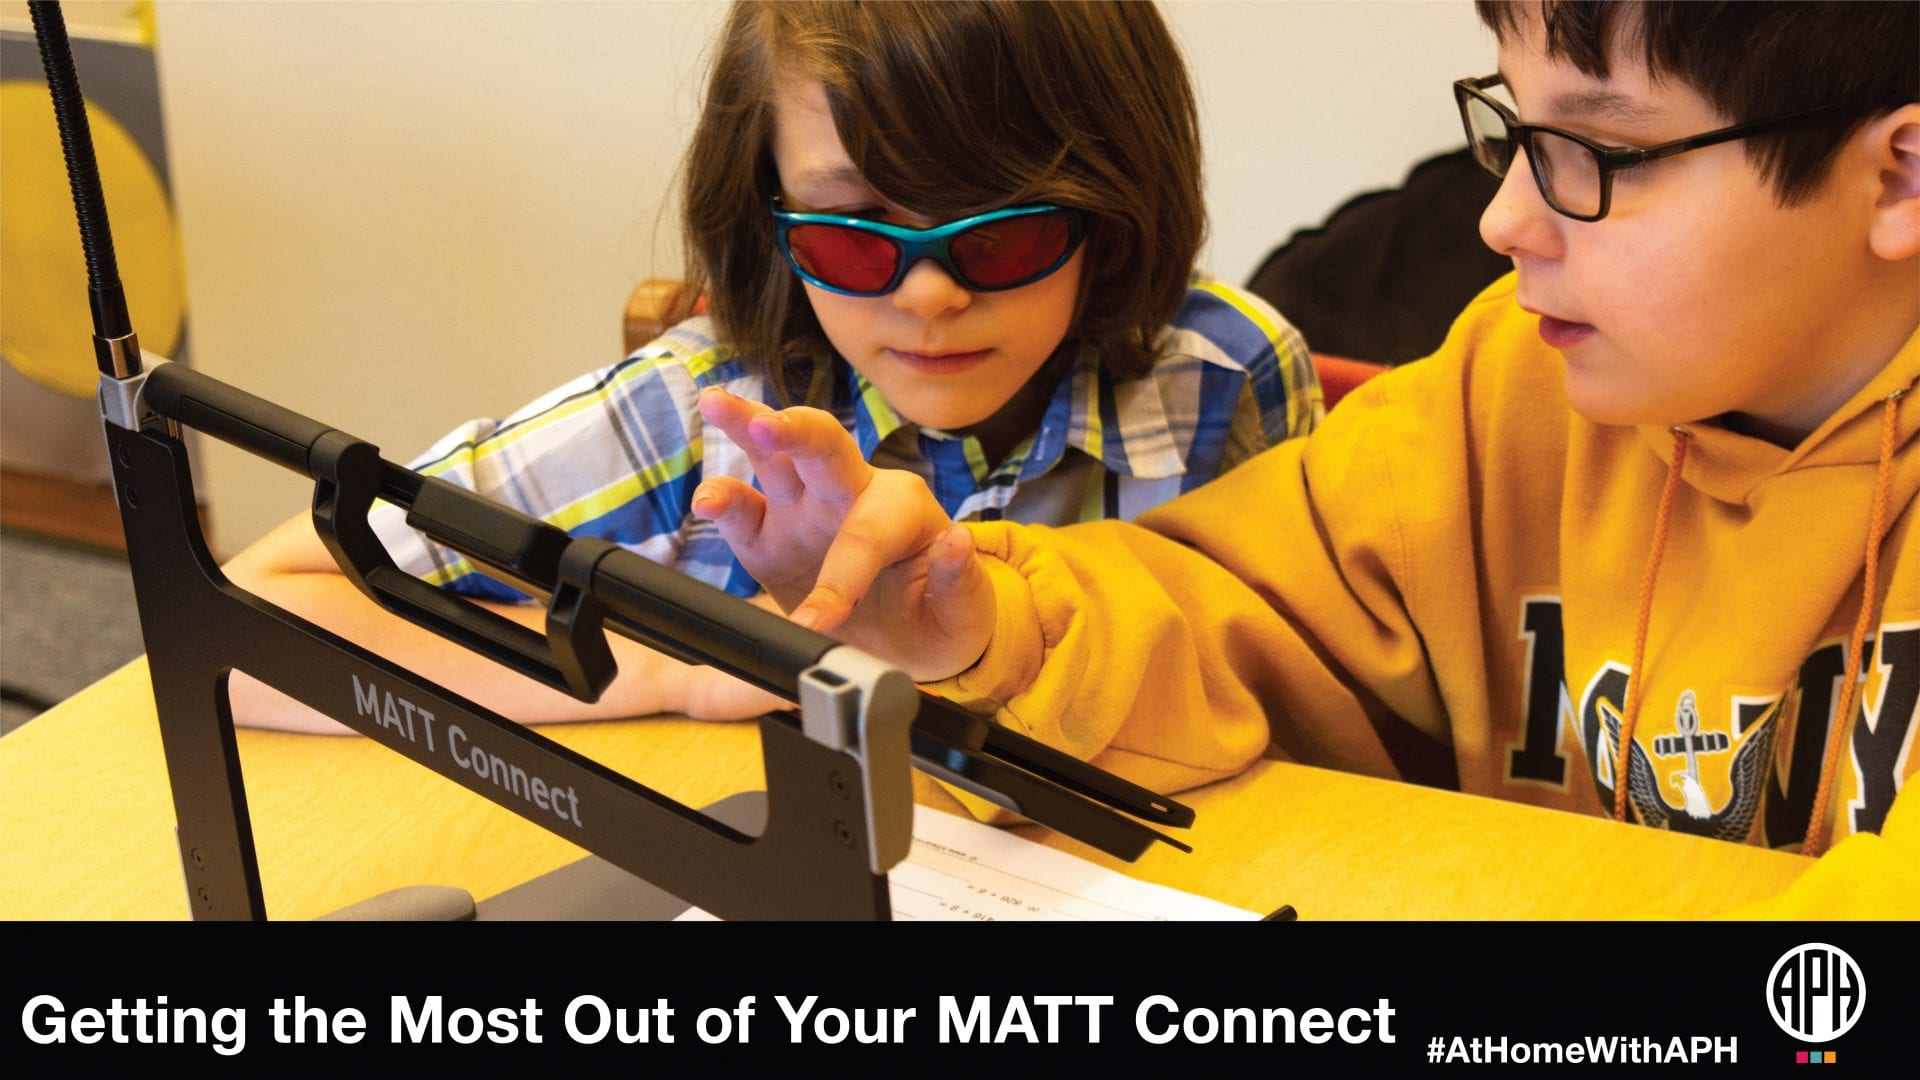 """Two students using the MATT Connect. Text reads """"Get the most out of your MATT Connect #AtHomeWithAPH"""""""